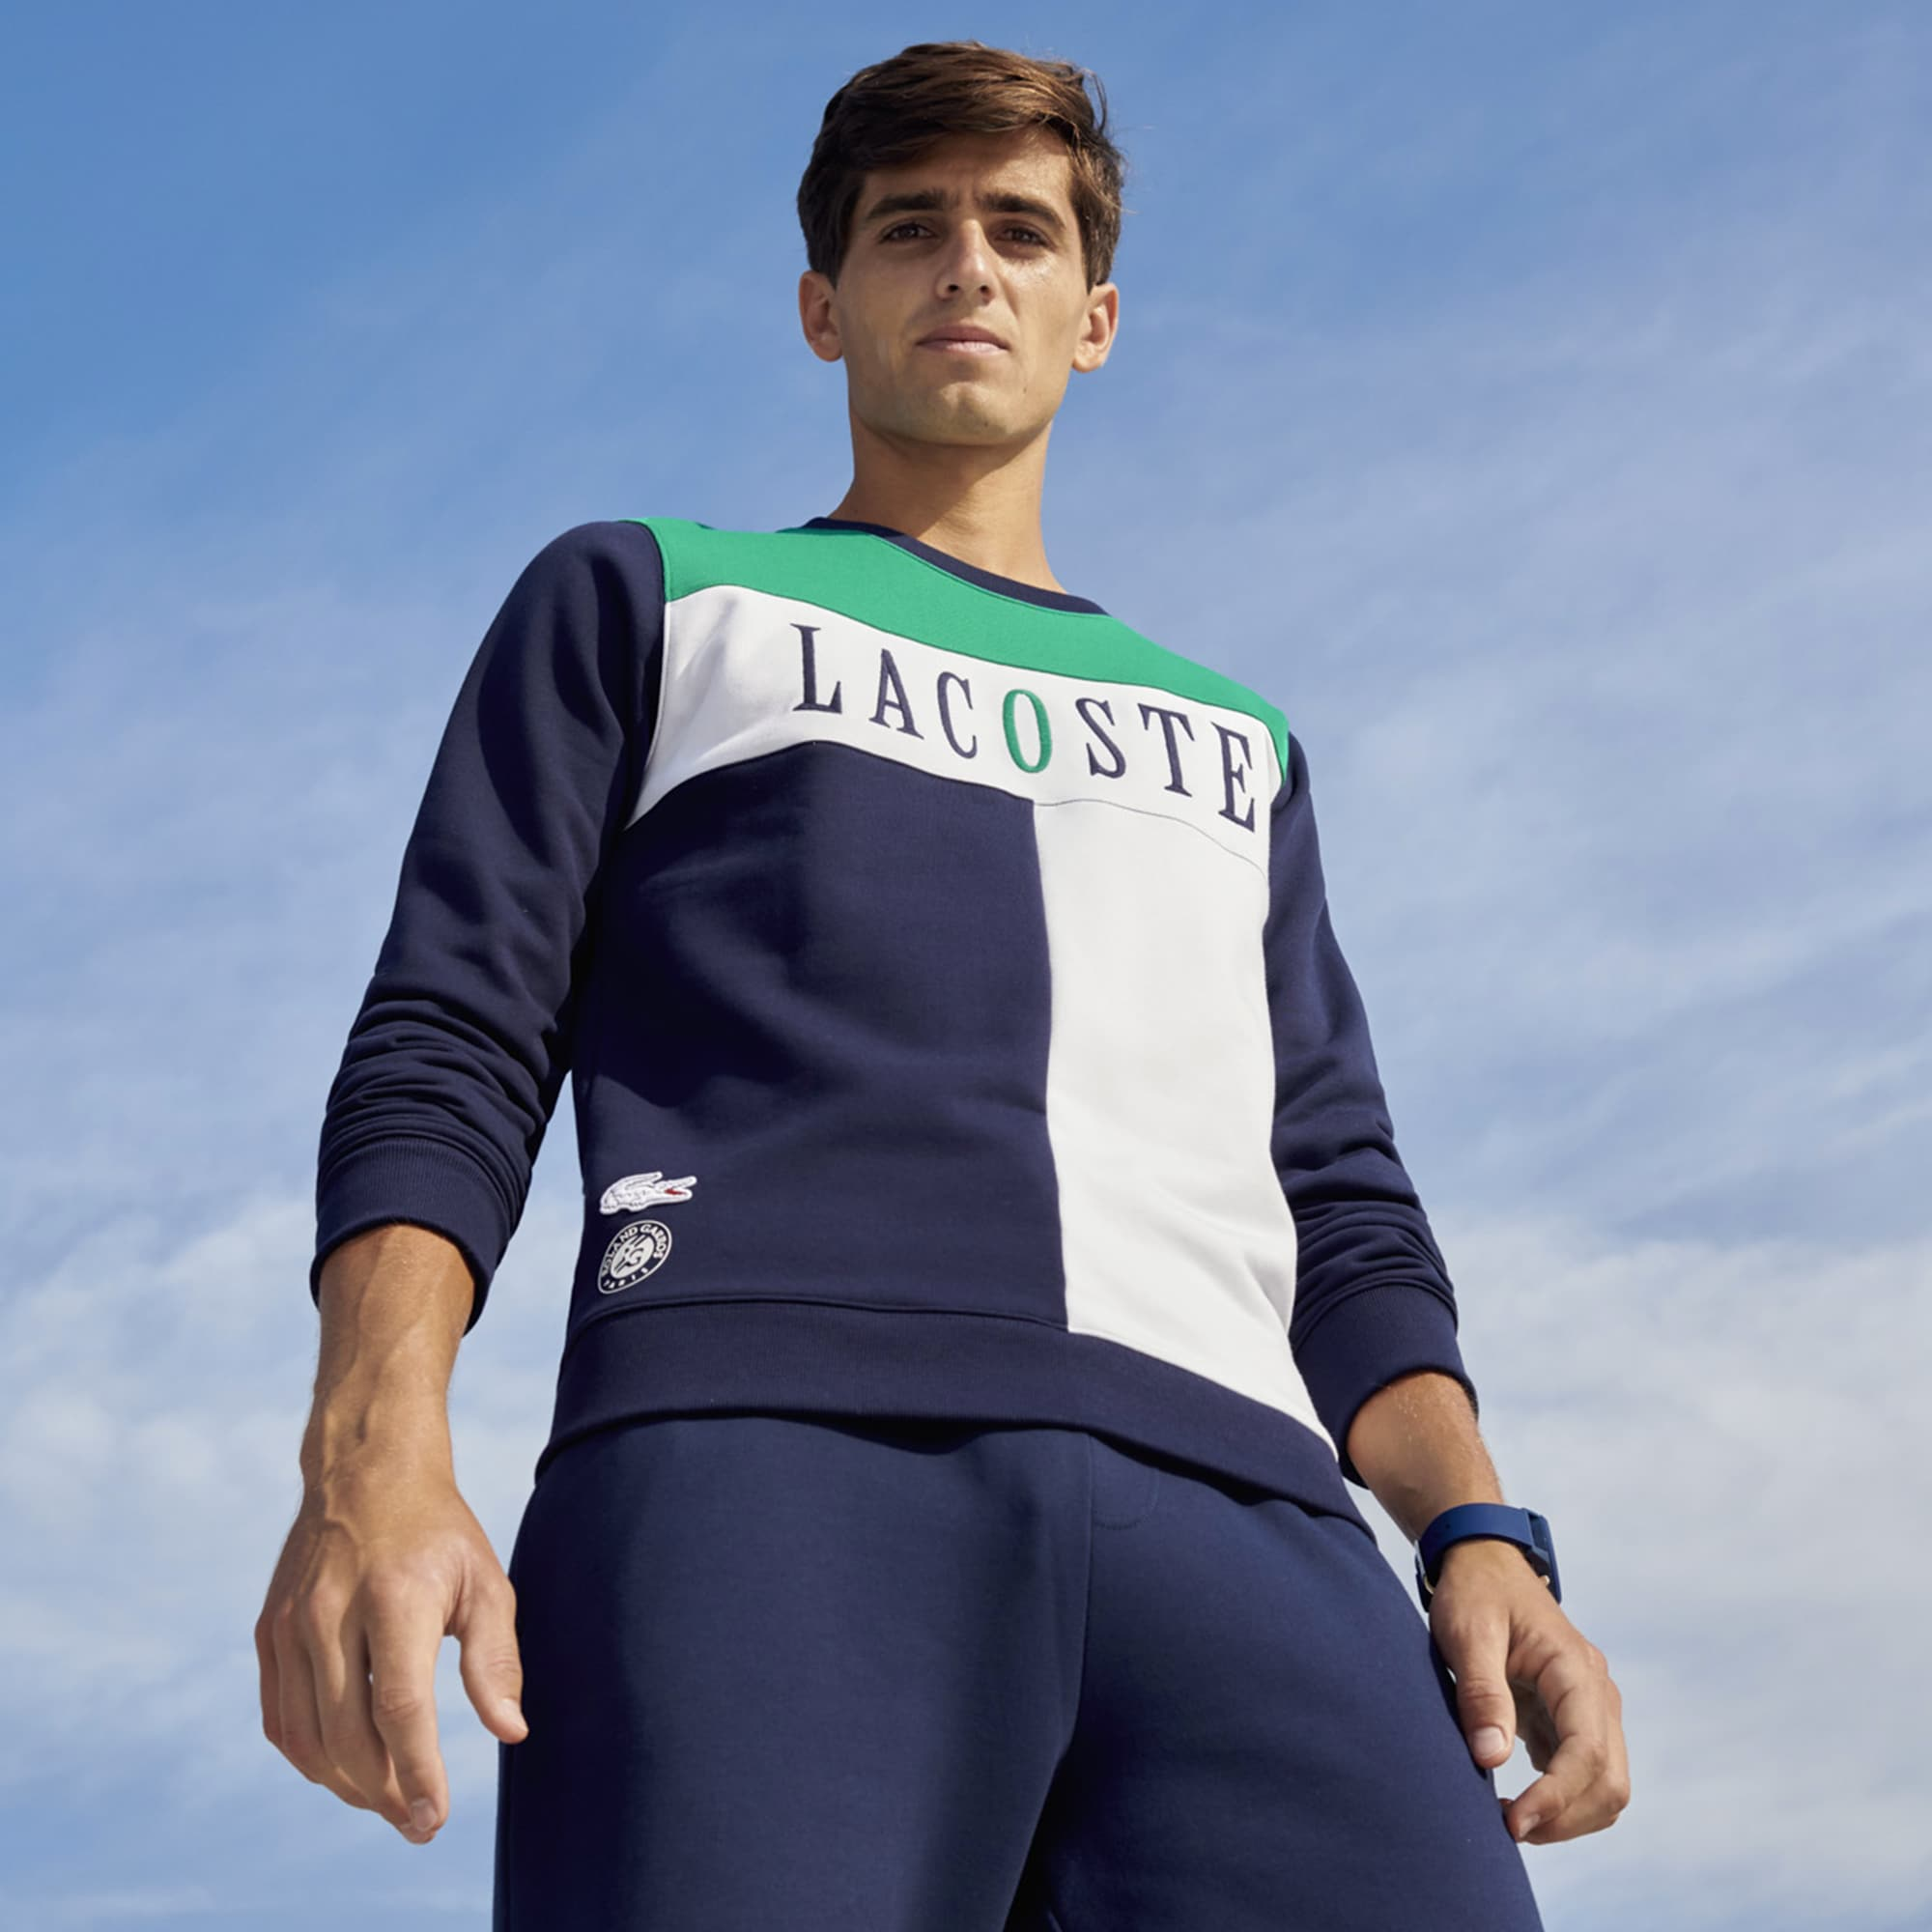 Men's Lacoste SPORT French Open Edition Fleece Sweatshirt